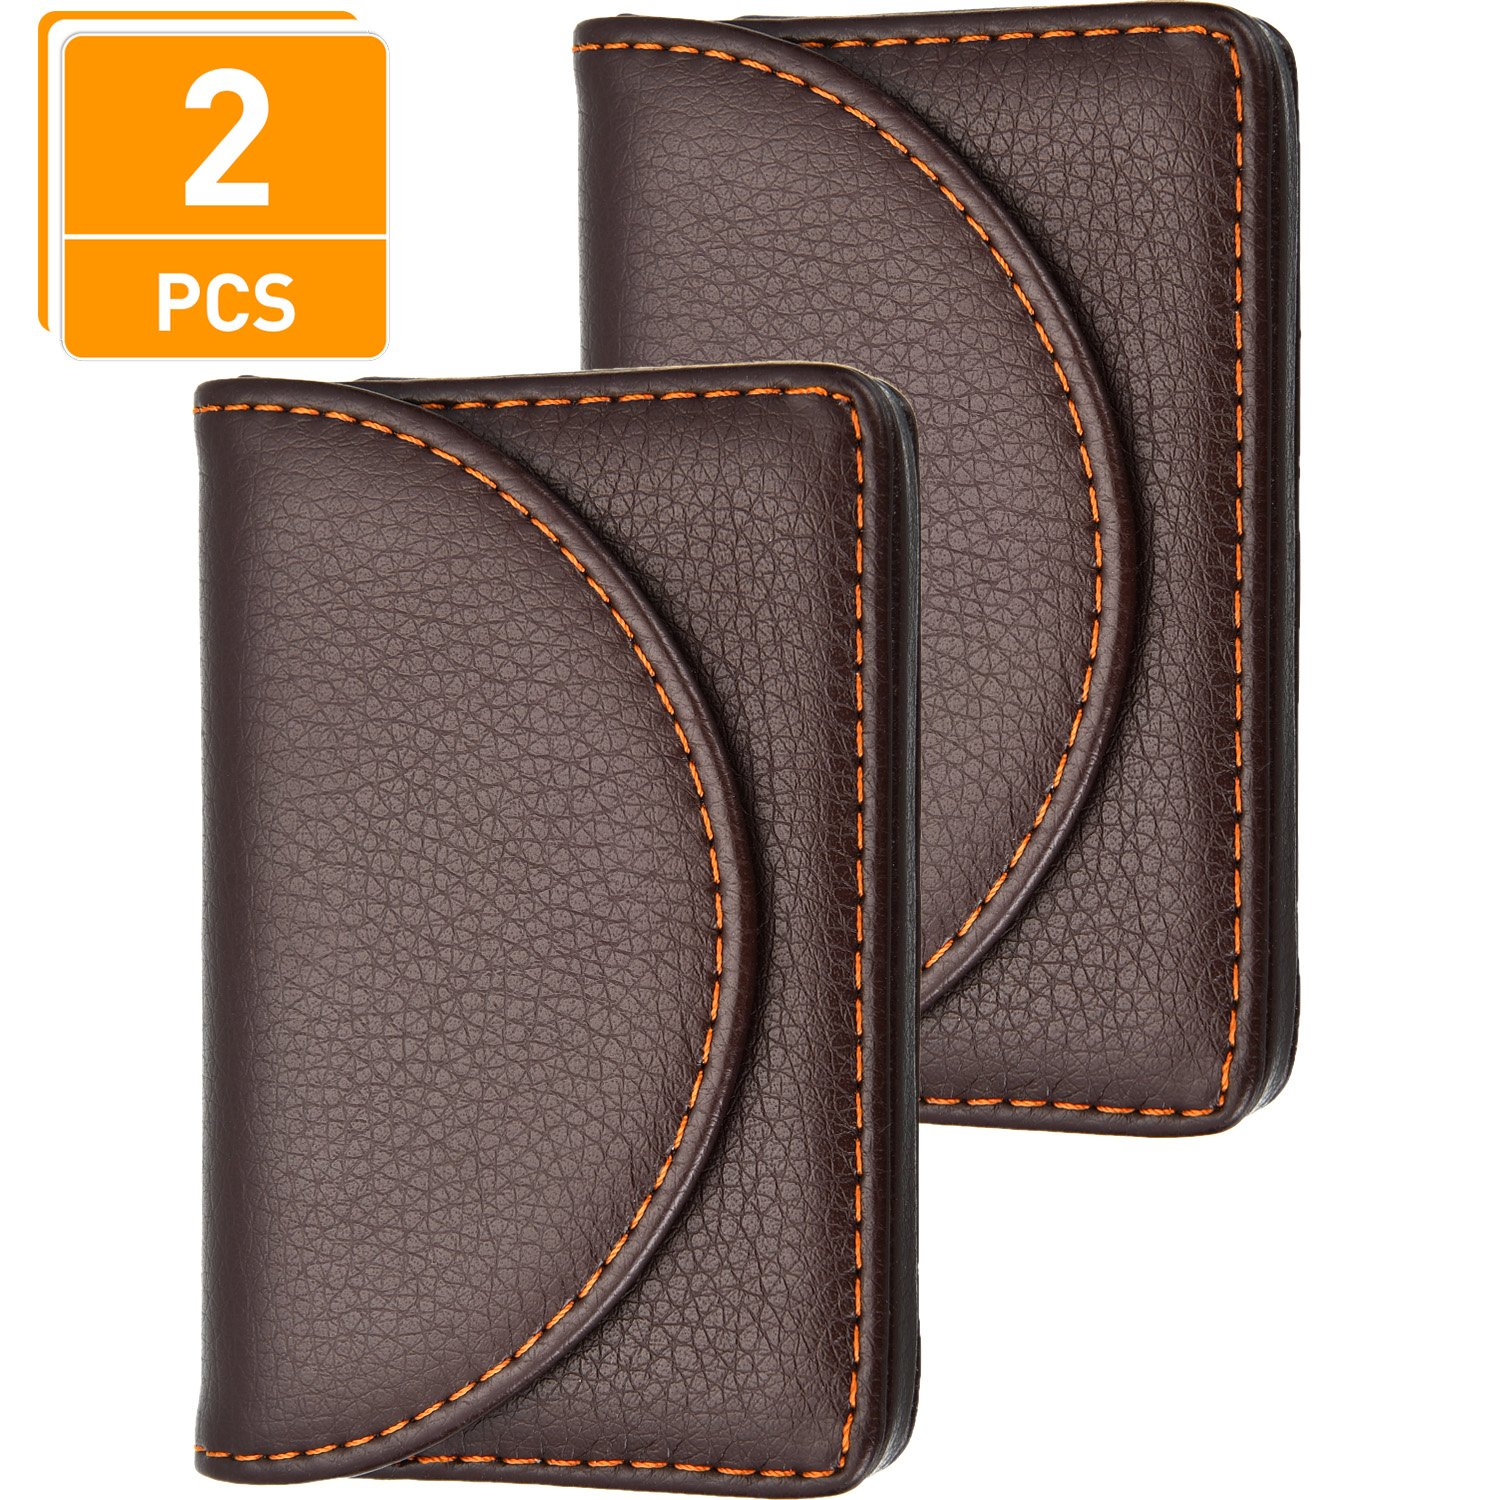 2 Pieces PU Leather Business Card Cases Card Holder Wallet Name Card Case with Magnetic Shut for Men and Women (Coffee) Blulu